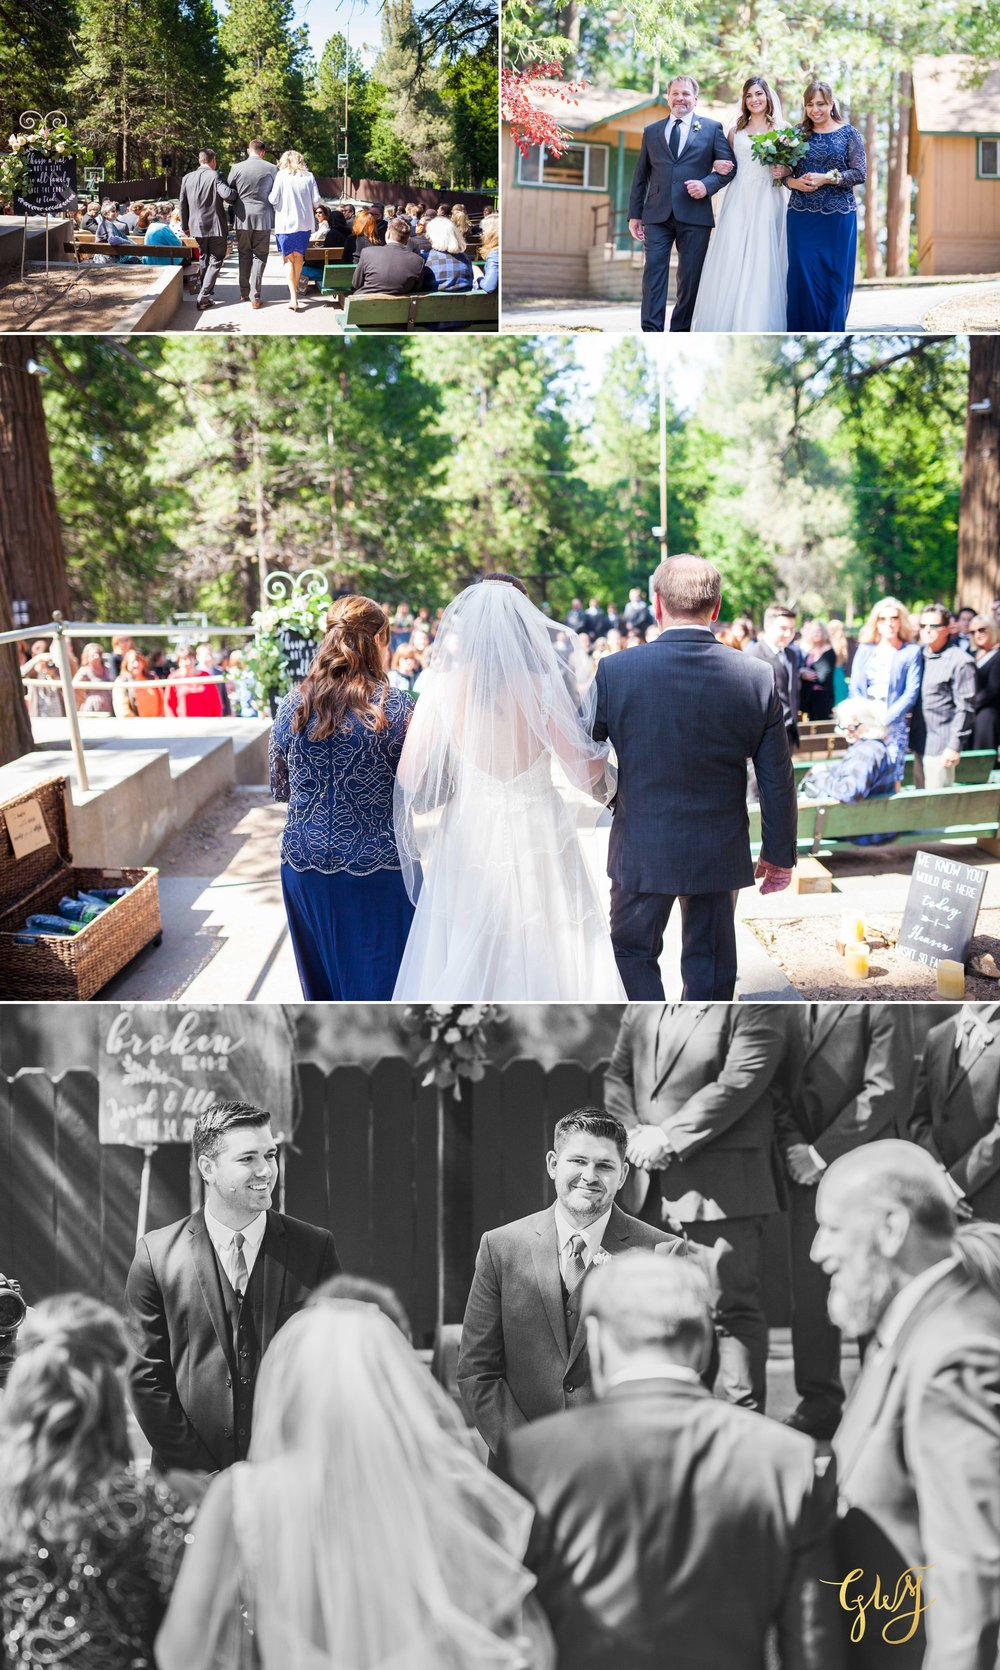 Allison + Jared Southern California Mountain Thousand Pines Christian Camp Wedding by Glass Woods Media 20.jpg